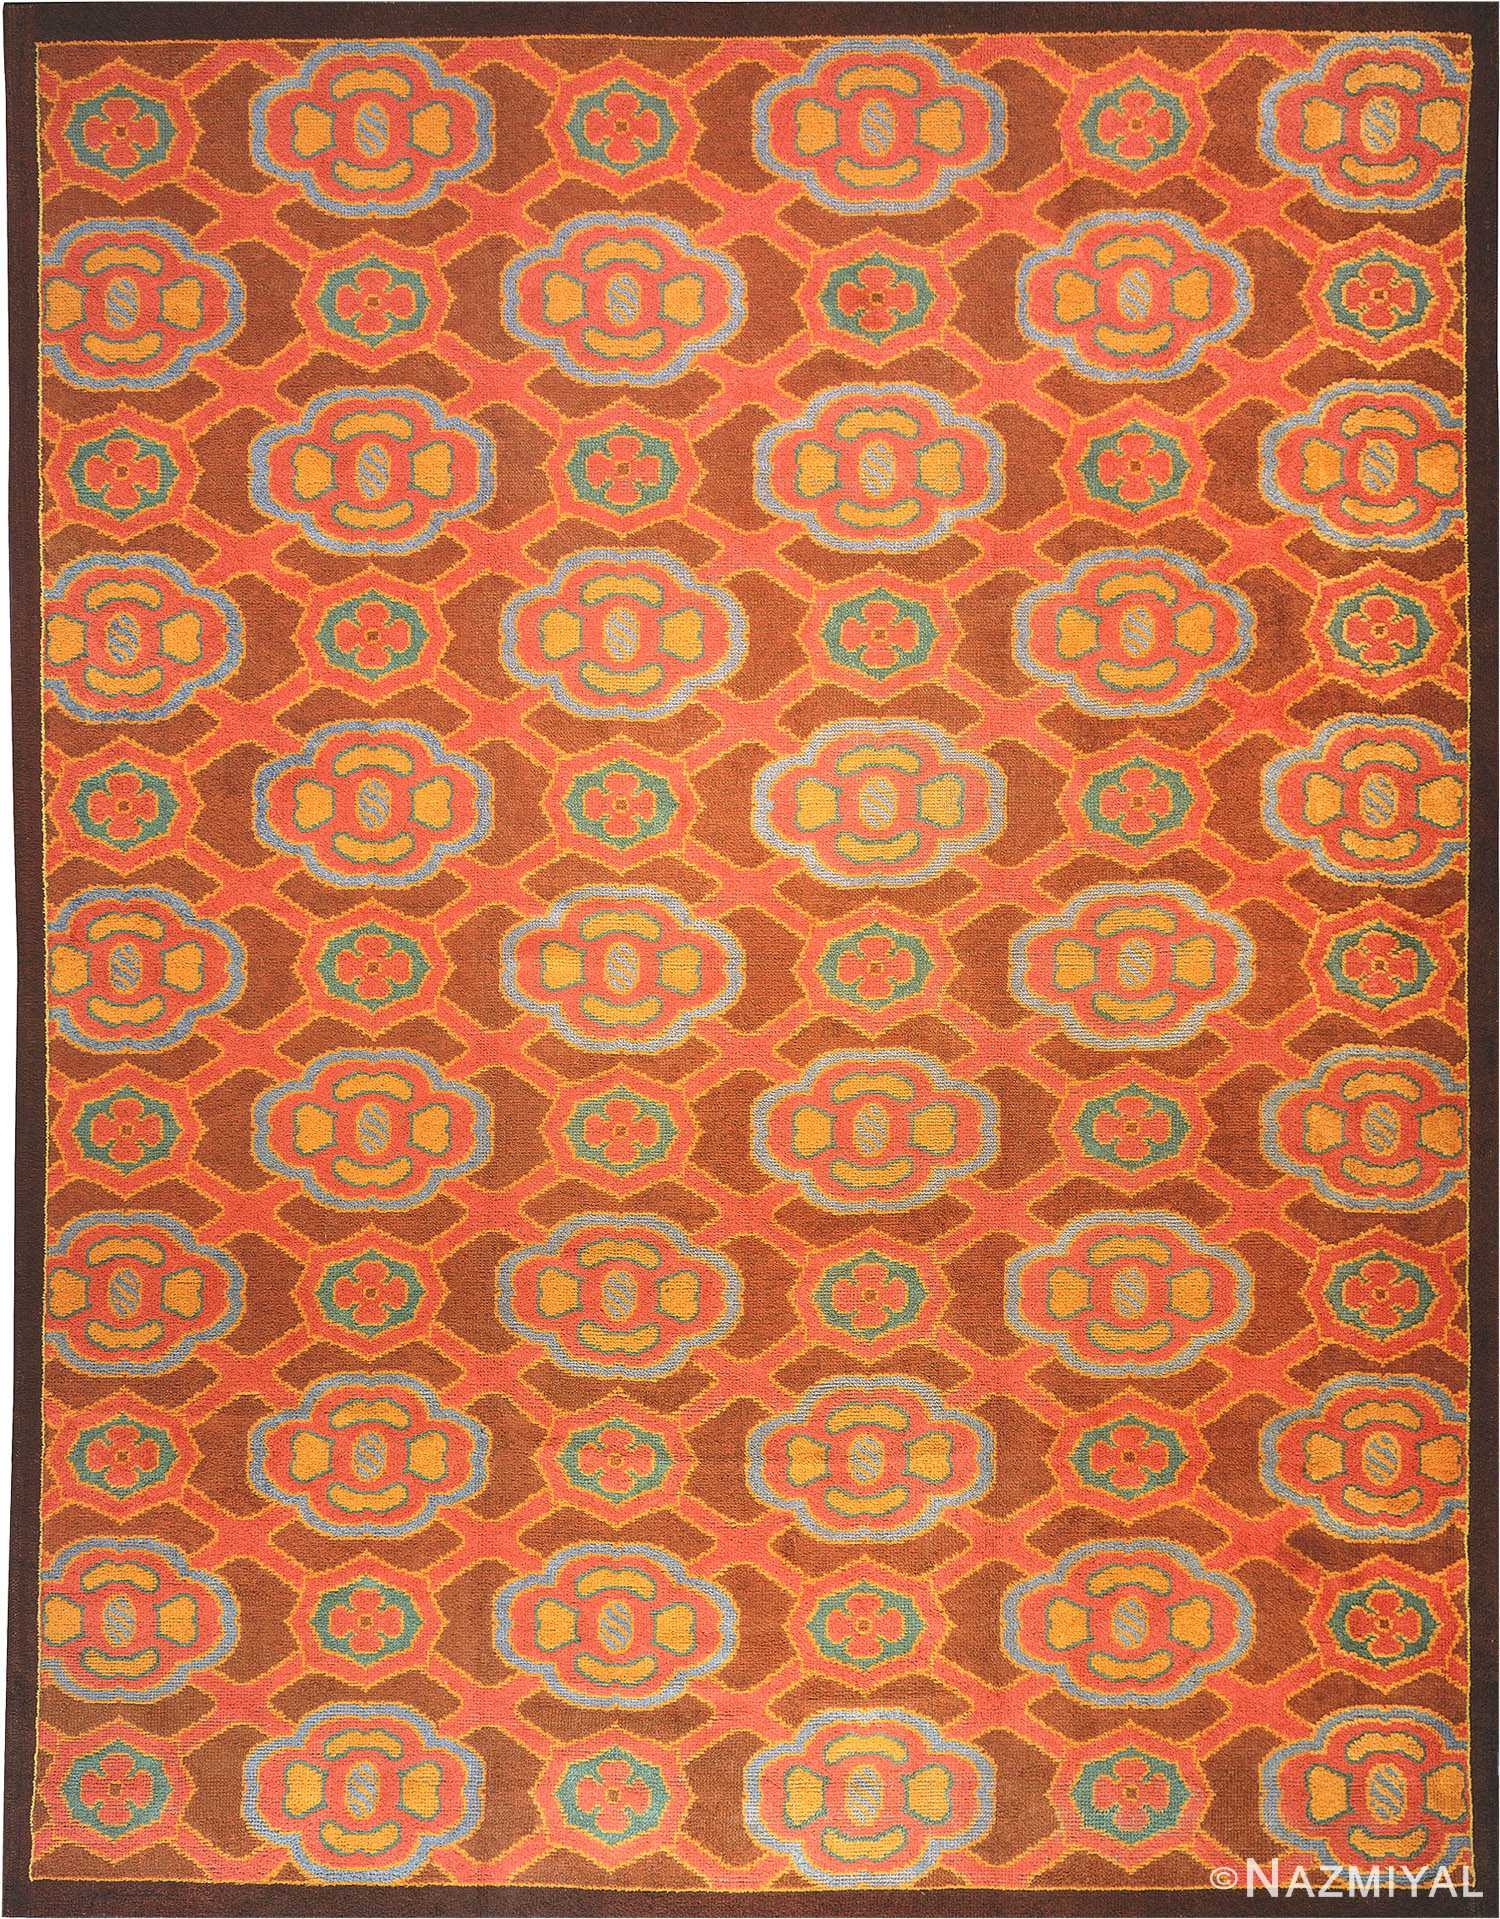 Art Deco Carpet Art Deco Carpets Art Deco Collection